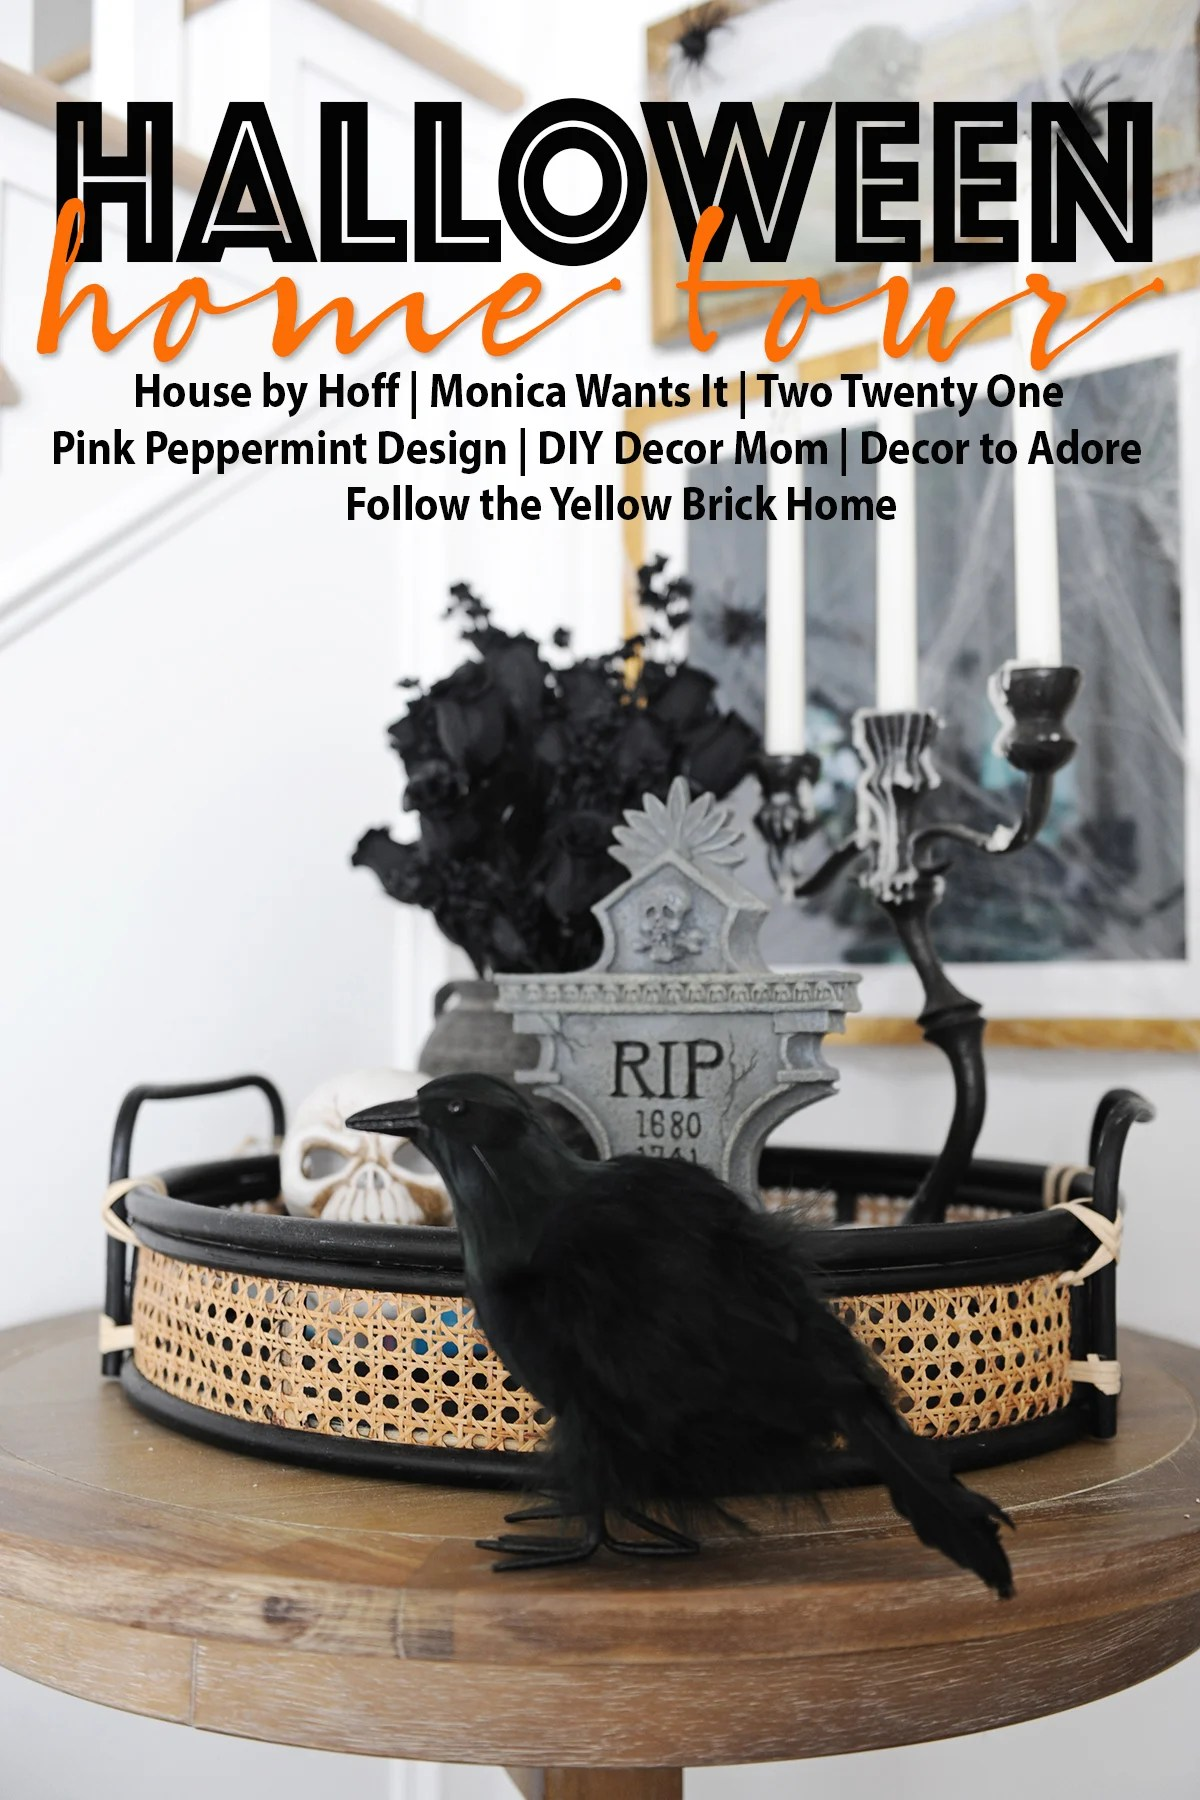 Halloween Home Tour : 7 Great Halloween Design Ideas